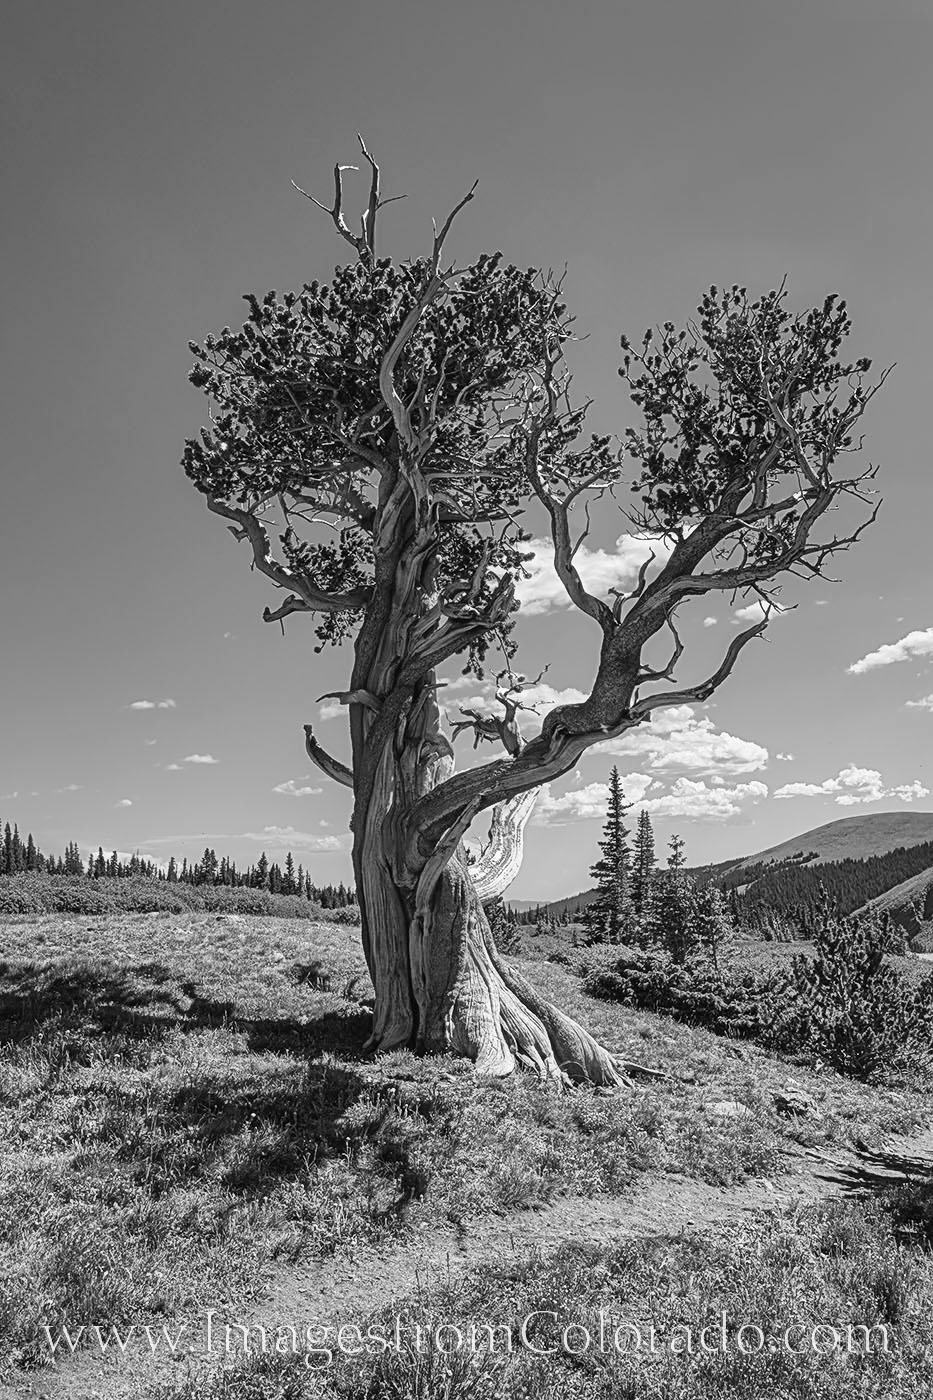 bristlecone pine, hell's hole trail, idaho springs, hiking, trails, hiking colorado, colorado hikes, photo